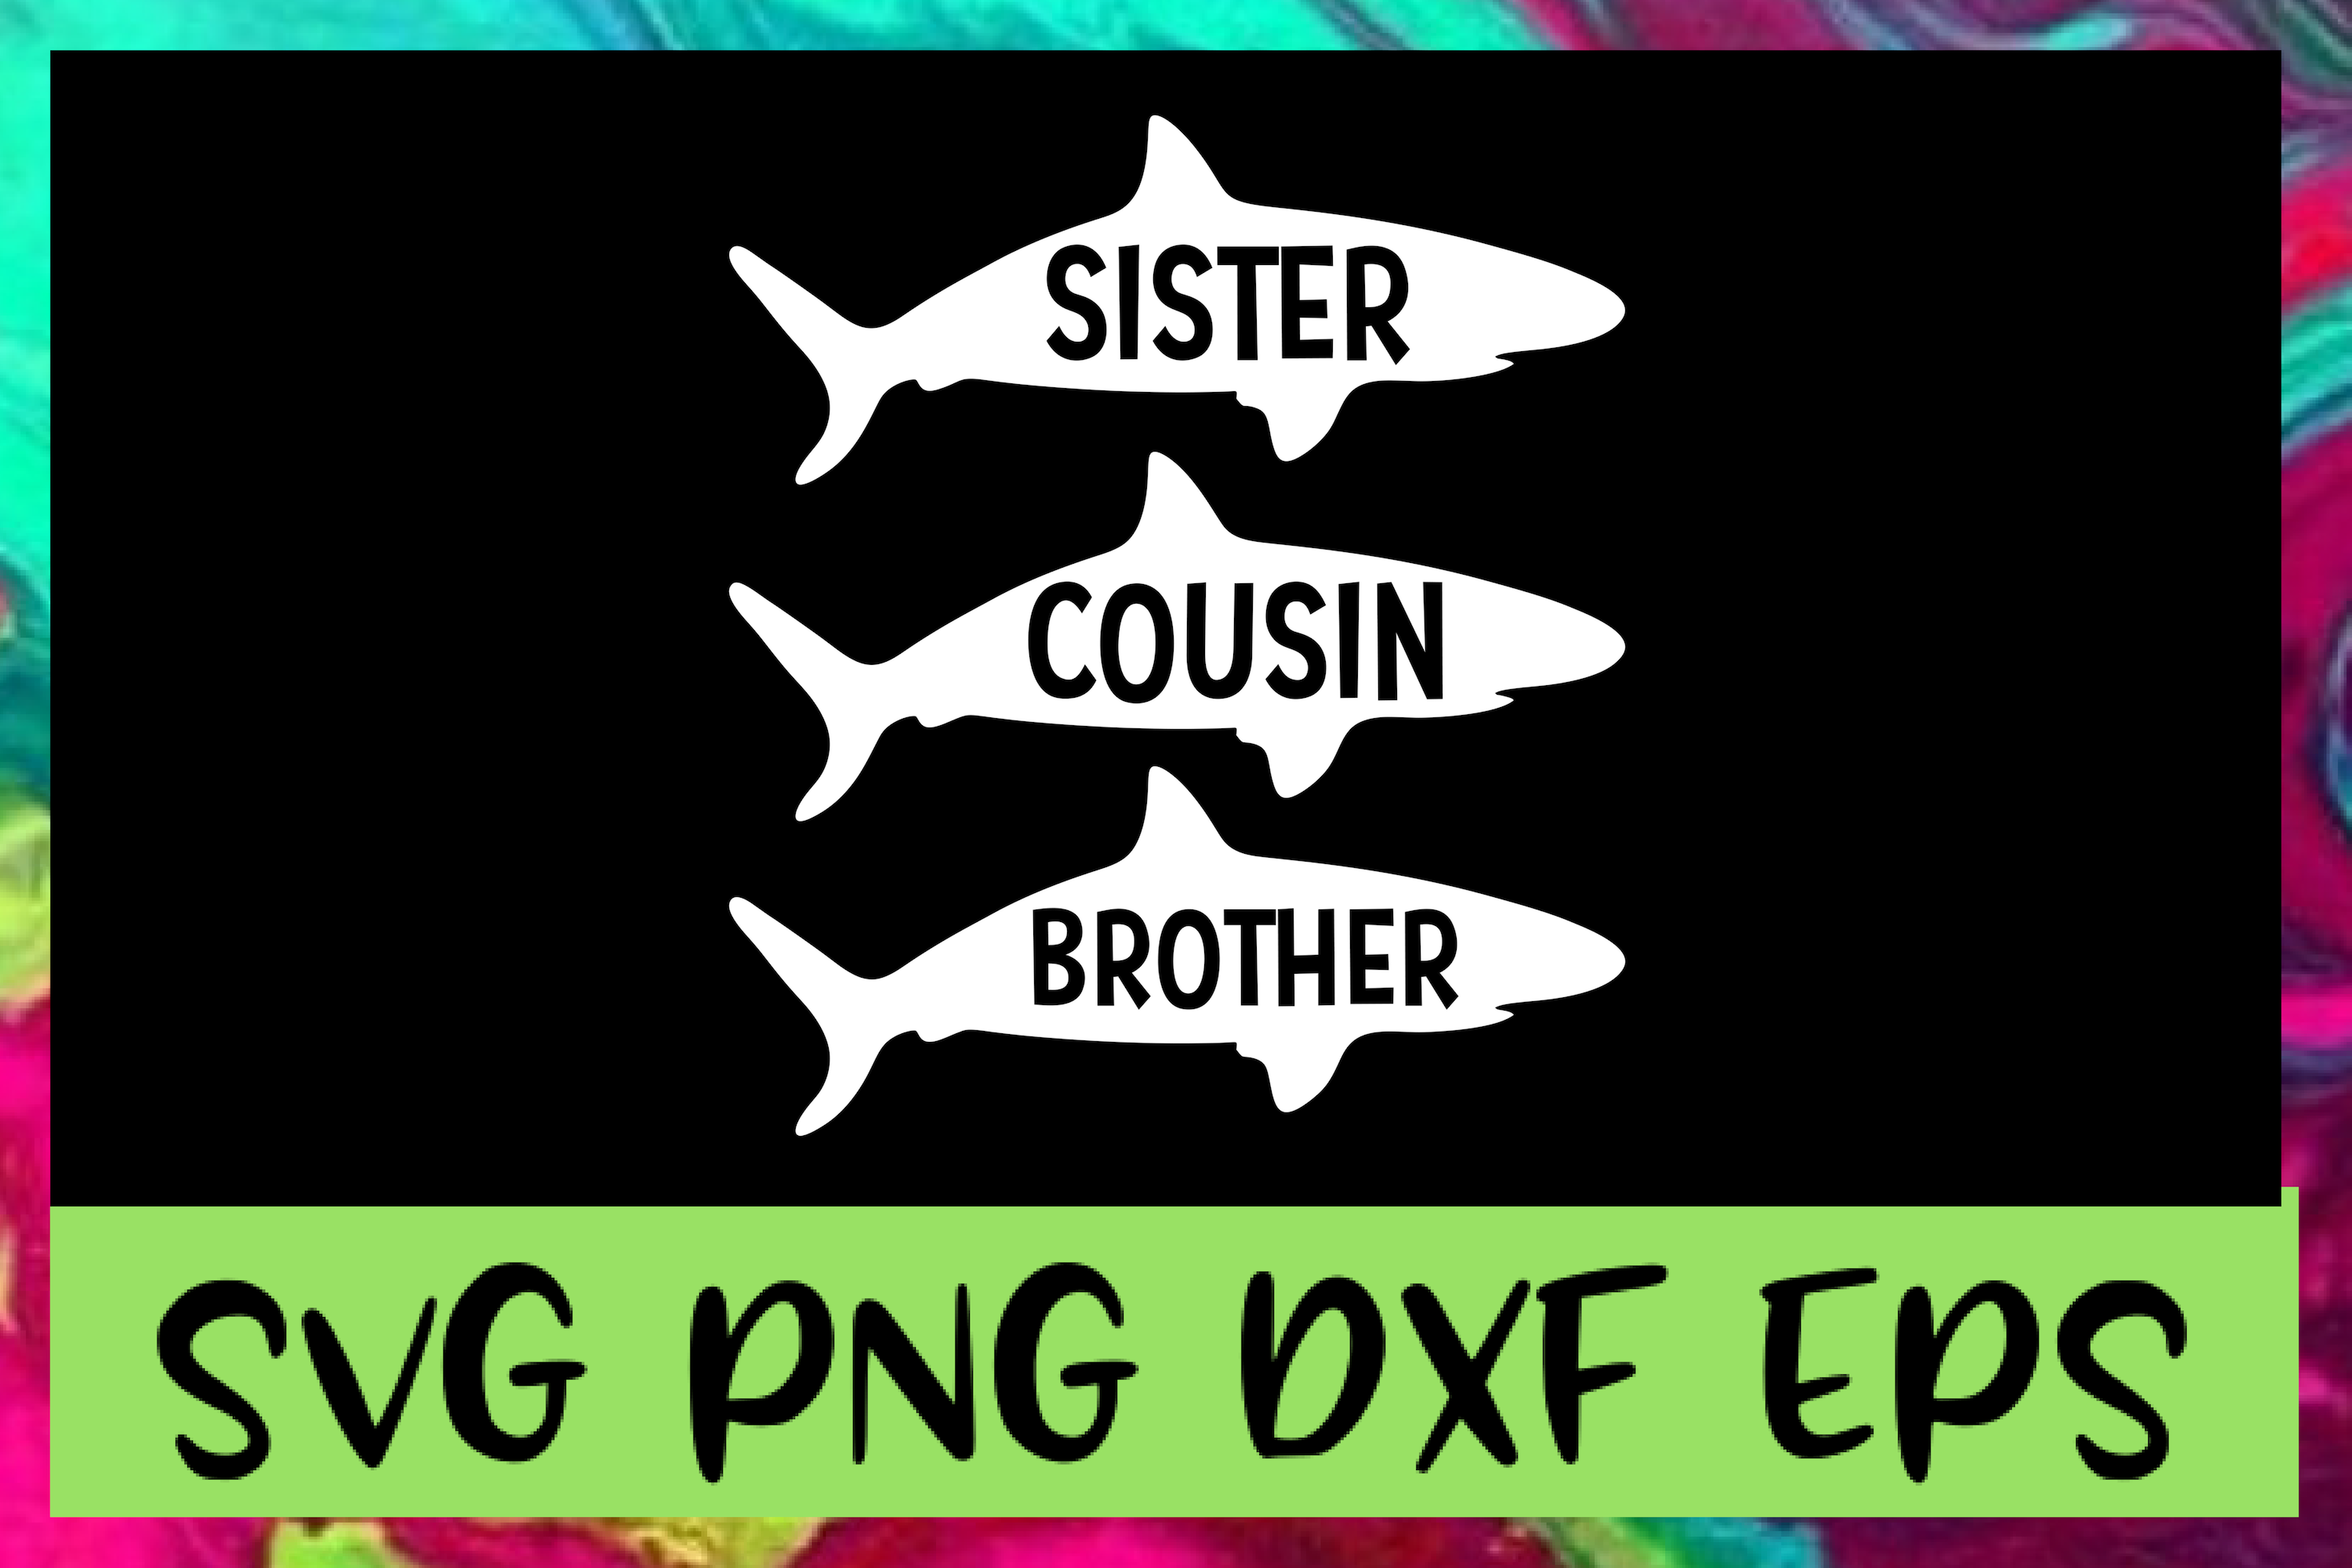 Brother Sister & Cousin Shark SVG PNG DXF & EPS Design File example image 1